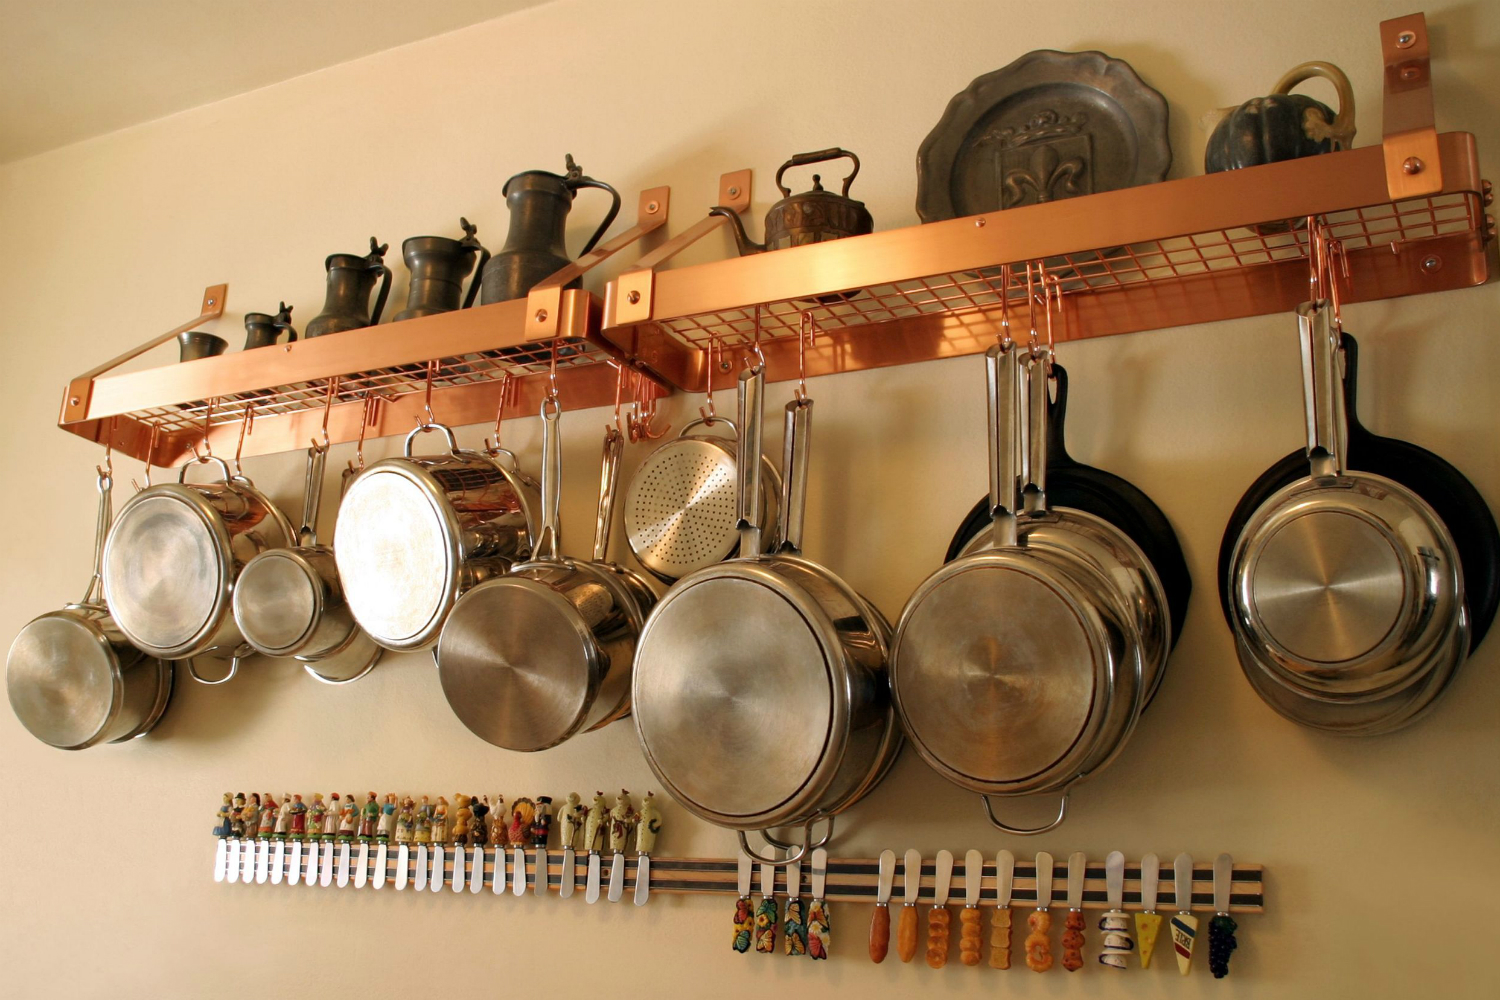 Wall Mounted Pots Major Mom Brings Drill Sergeant Efficiency To The